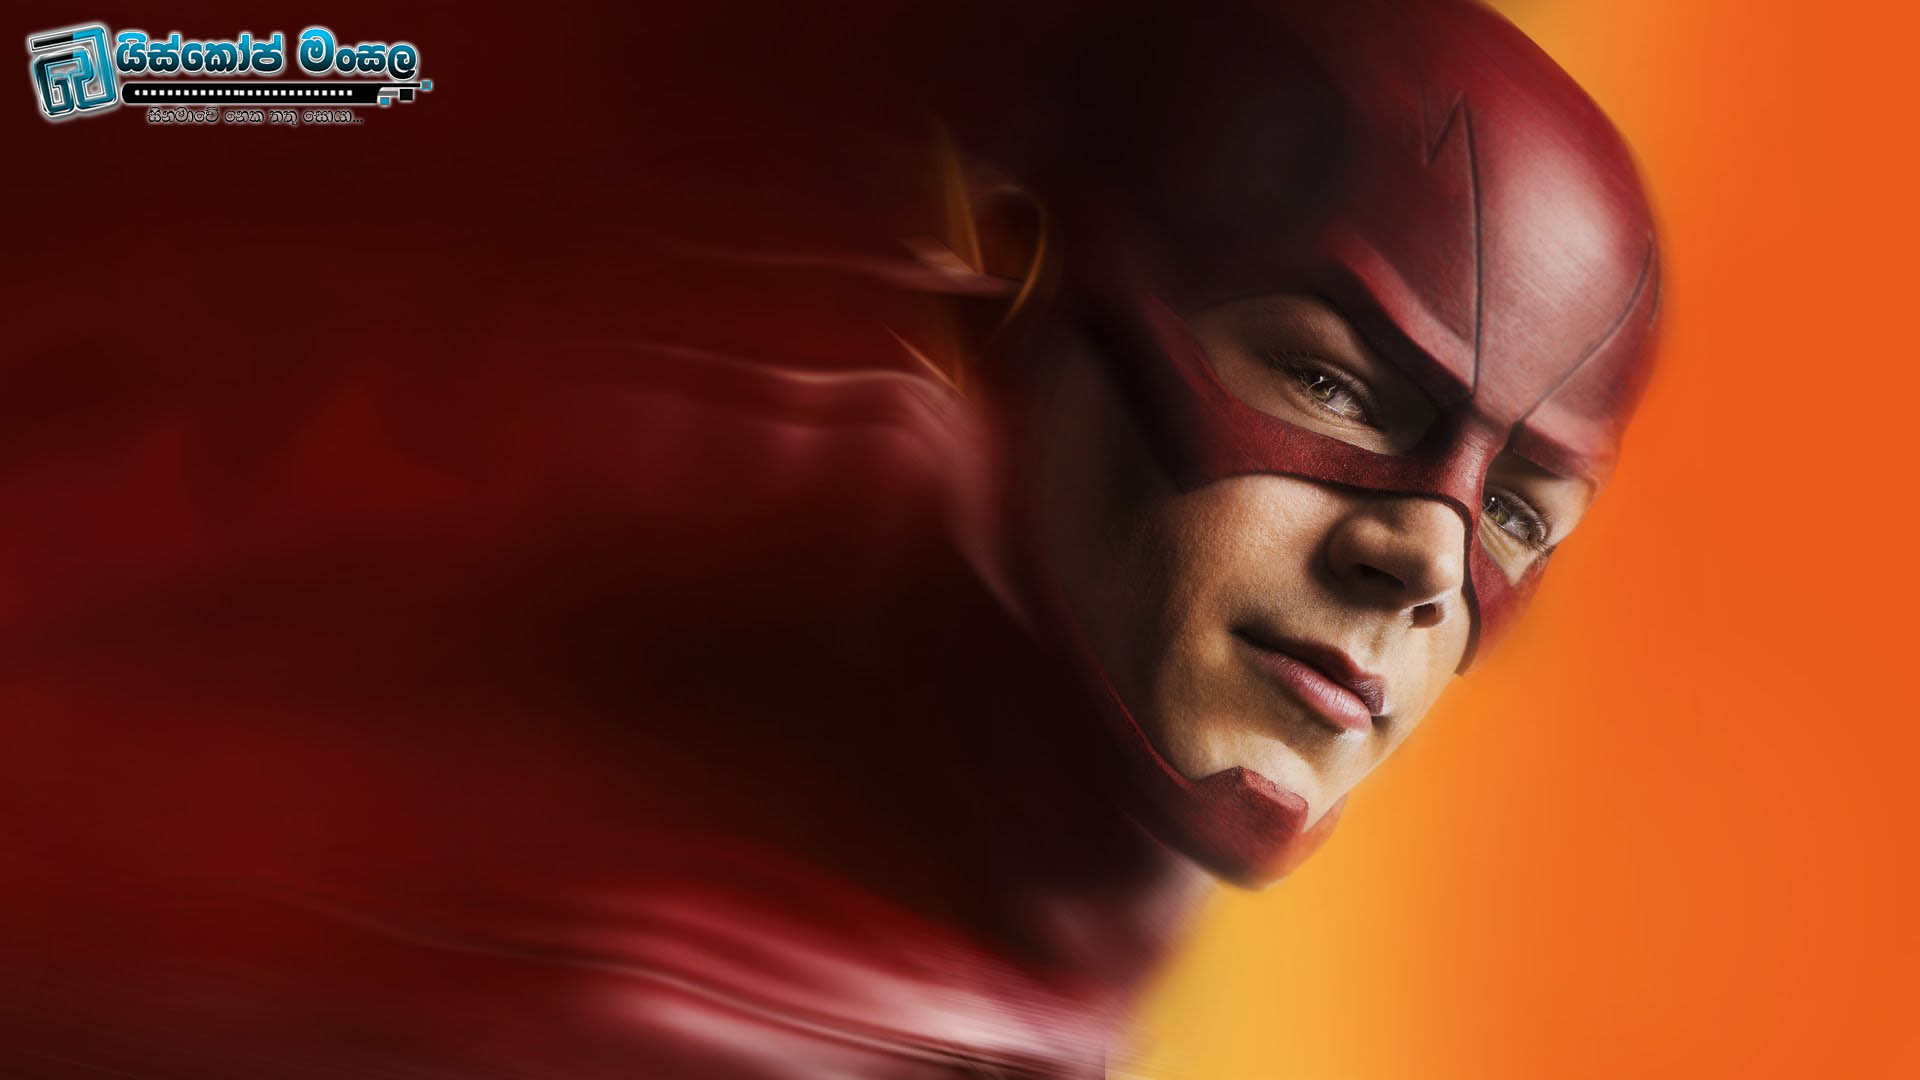 The Flash | Other Worlds Extended Trailer | The CW